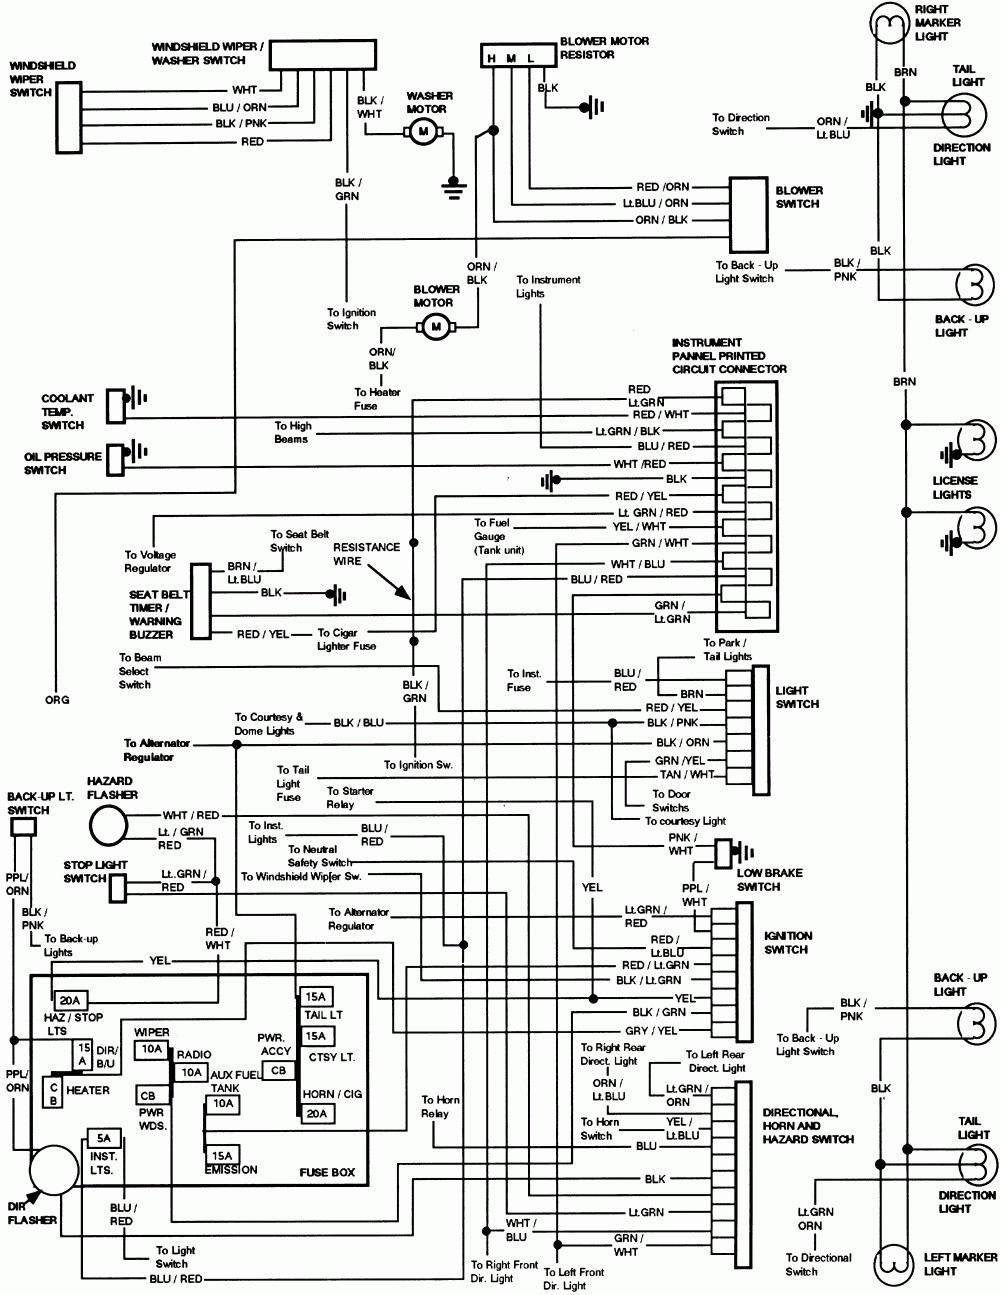 hight resolution of wiring diagram for 1989 wiring diagram today1989 f150 headlight wiring diagram wiring diagram for you wiring